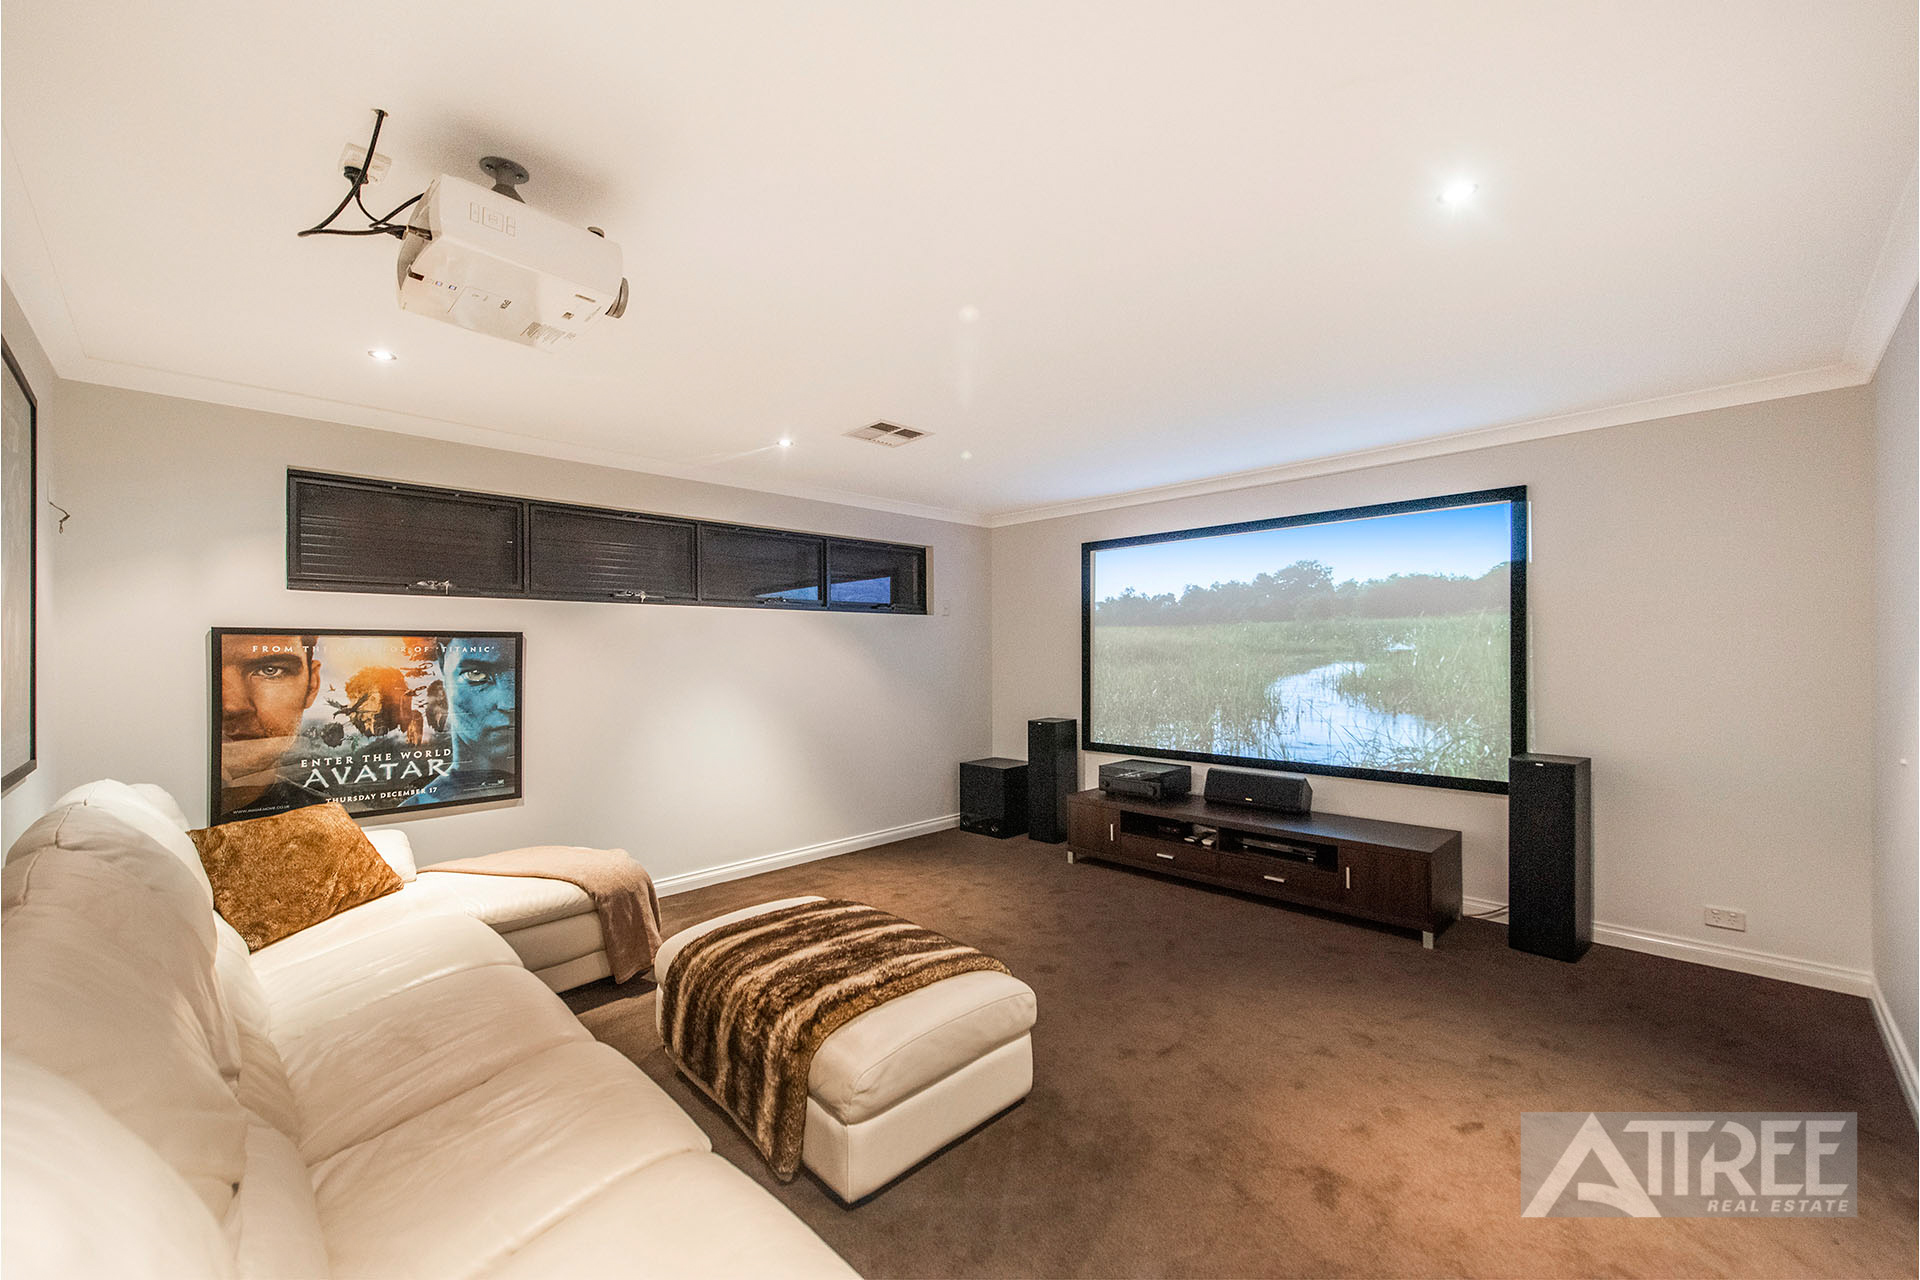 Property for sale in HARRISDALE, 12 Mossgreen Link : Attree Real Estate